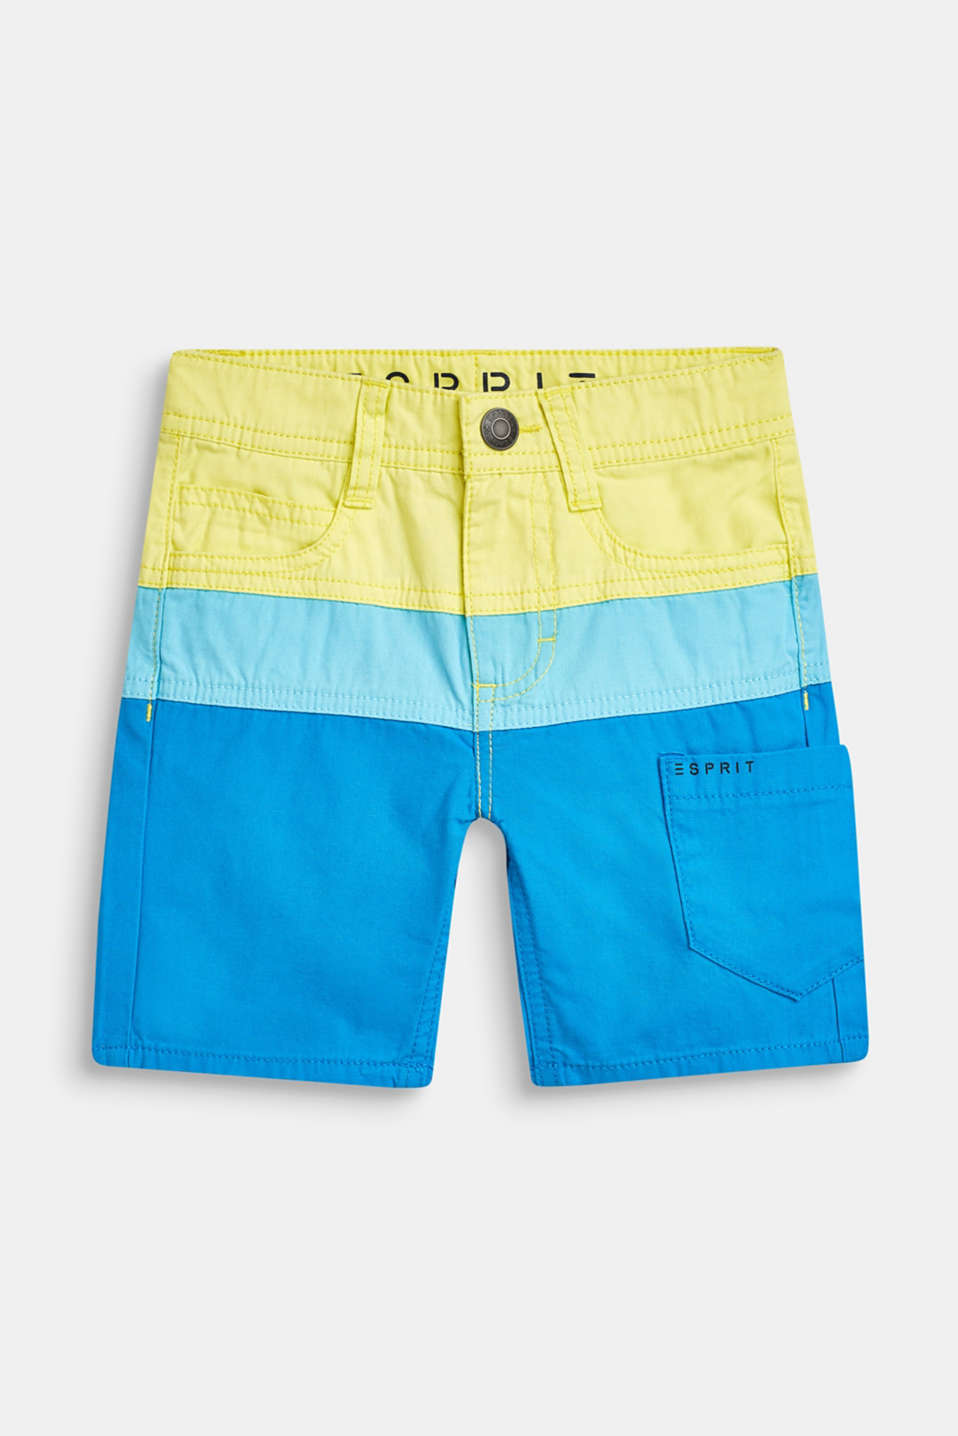 Esprit - Bermudas in a colour block design, 100% cotton